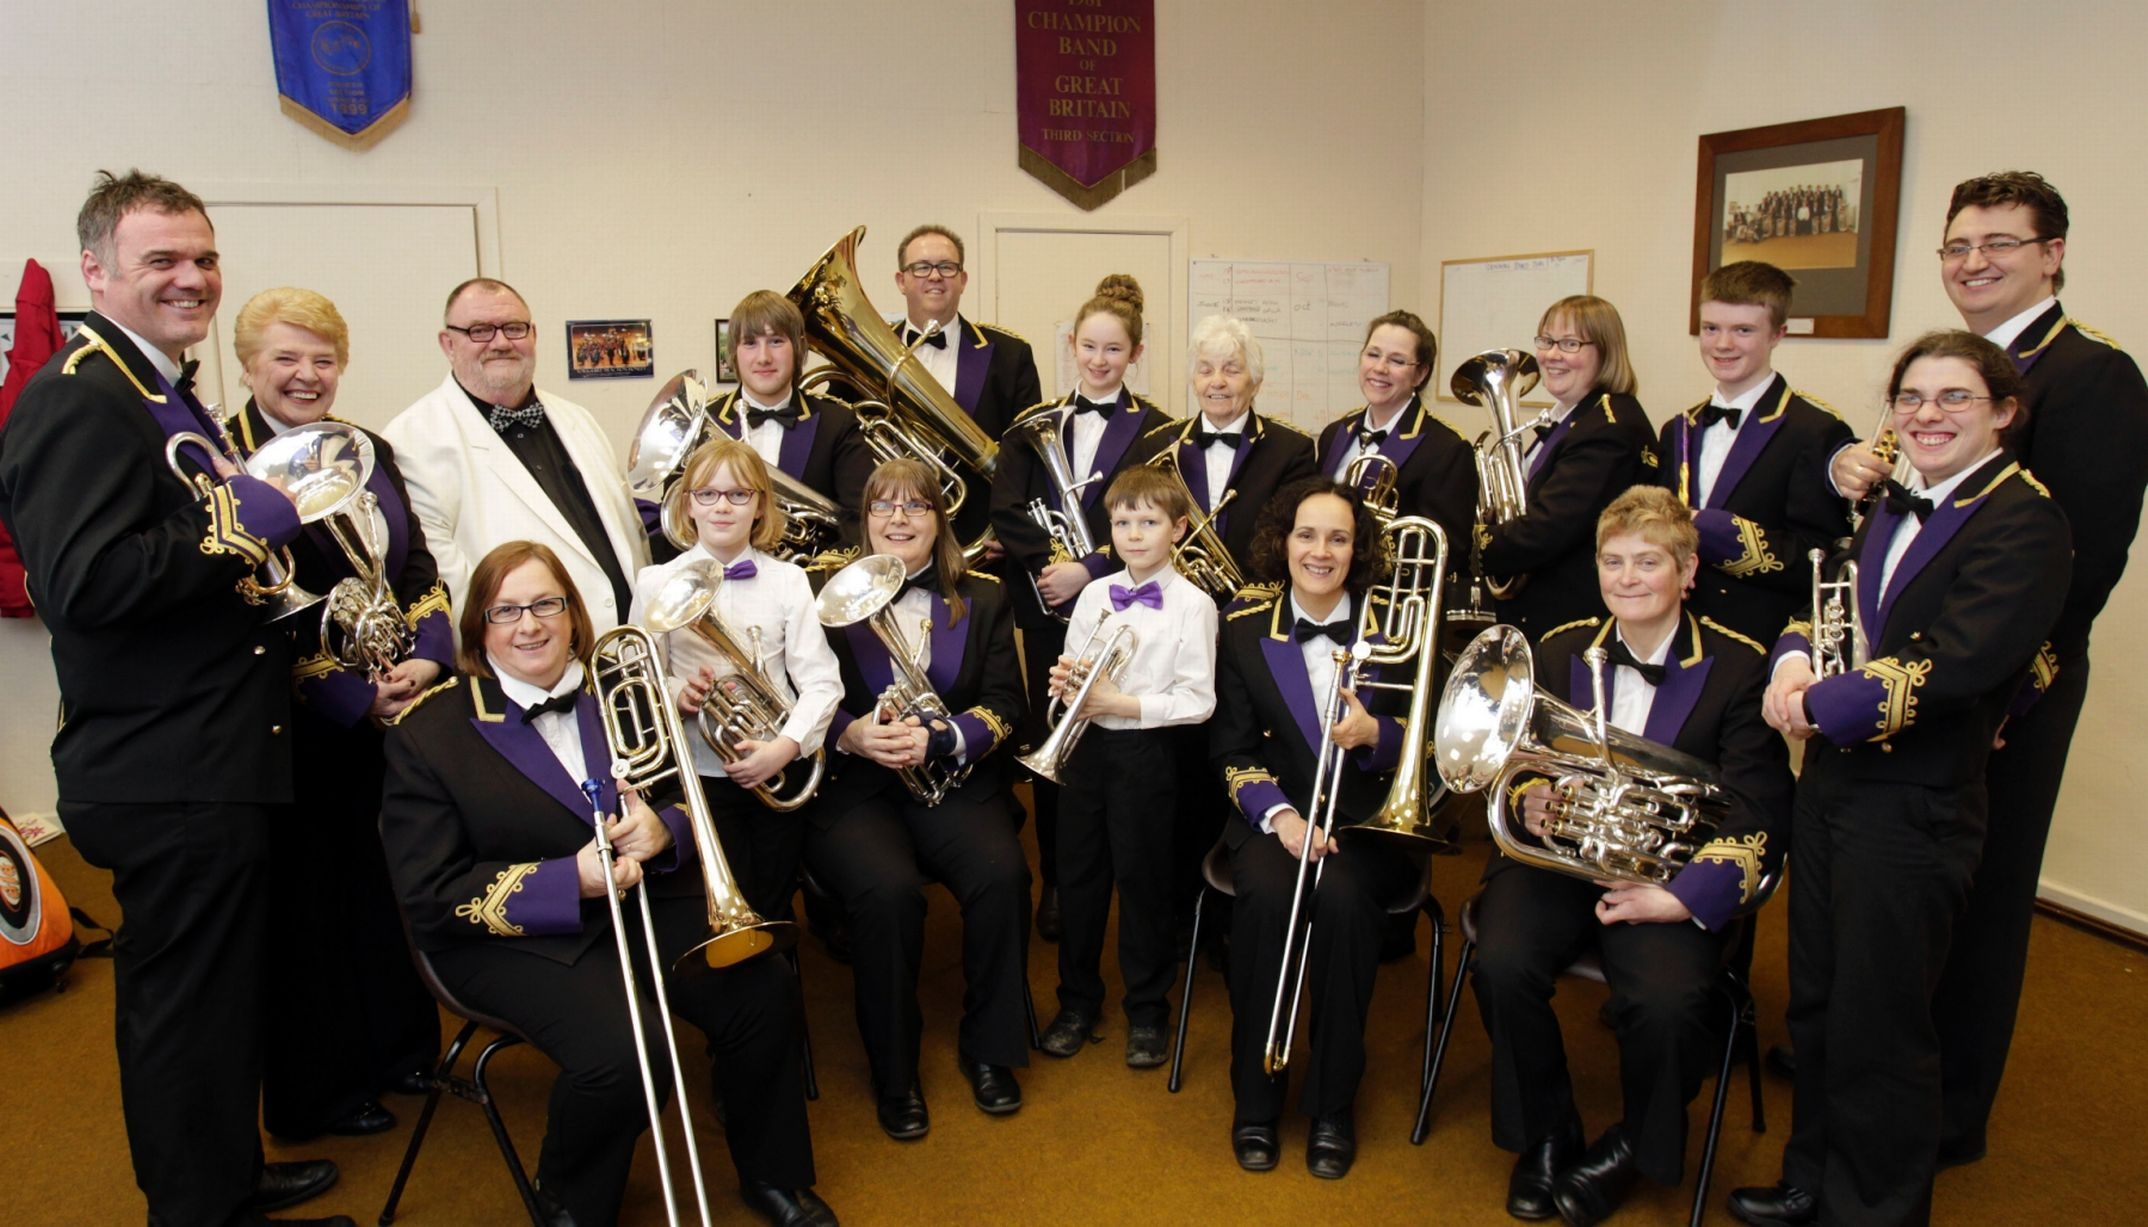 Yorkshire Traction Honley Band in the examiner